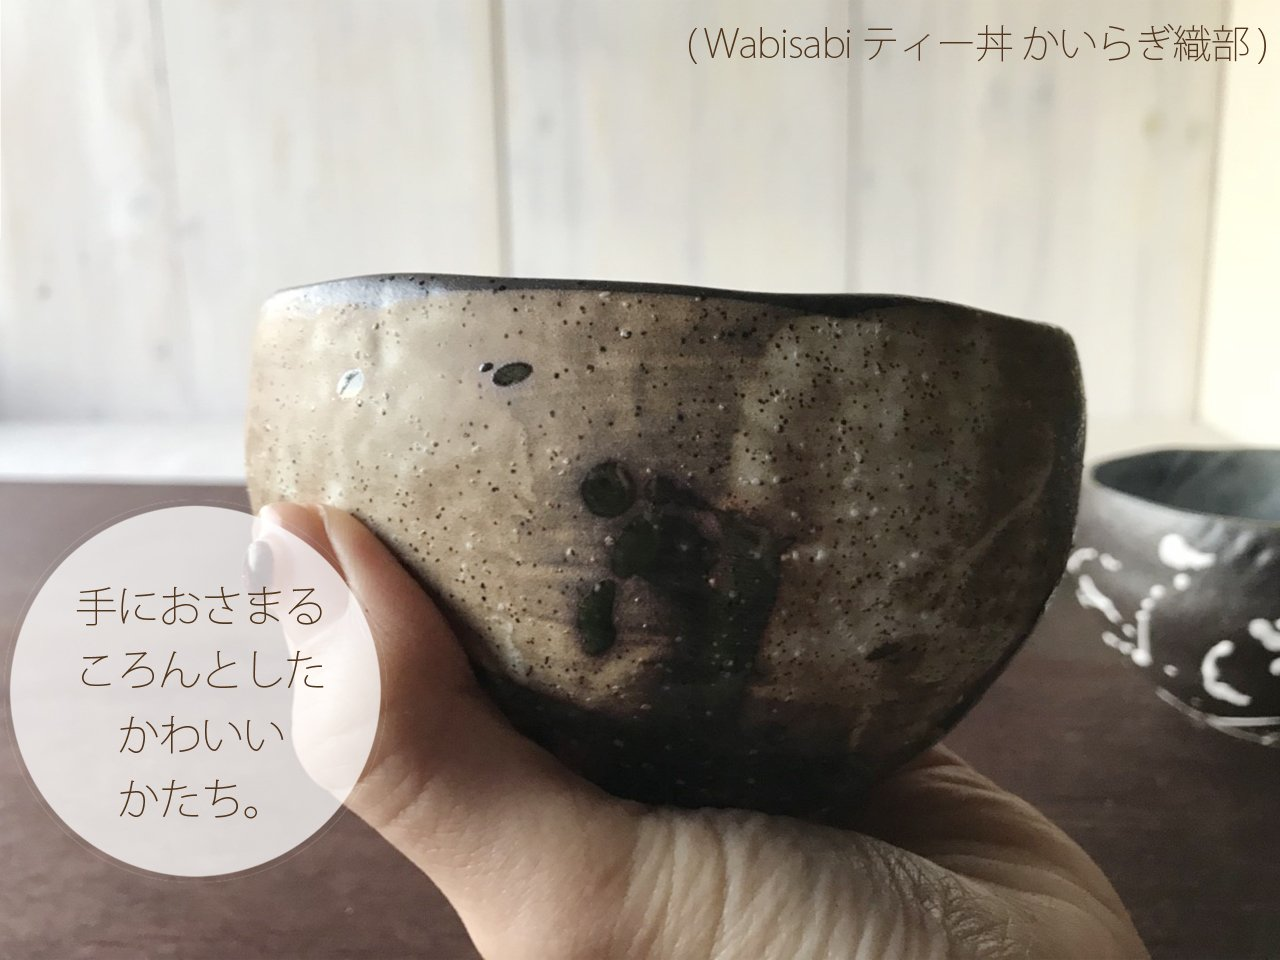 Matcha Bowl Made in Japan(Minoyaki Porcerin Wabisabi) 500ml (Wabisabi Gold)